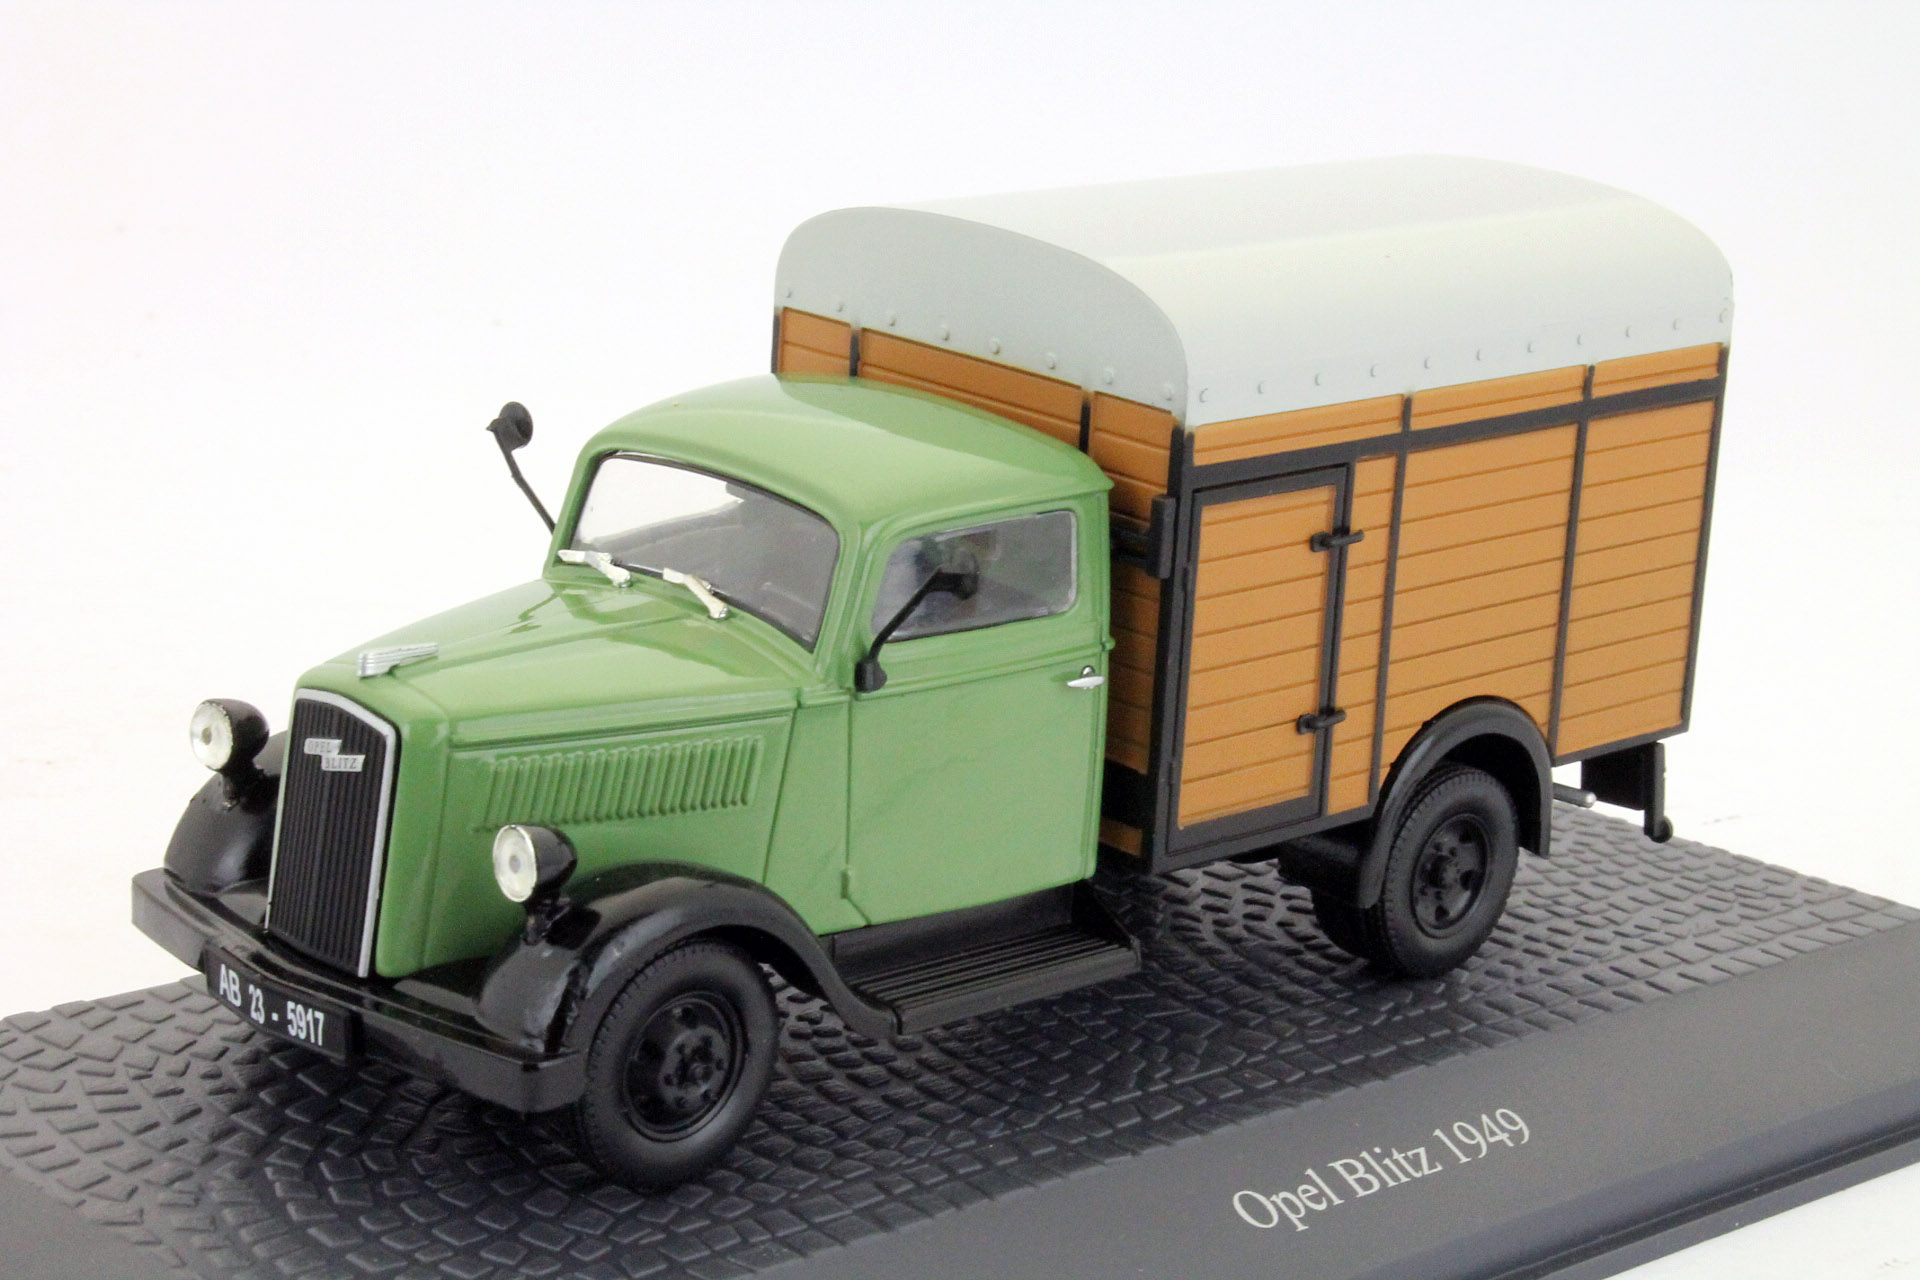 Opel Blitz 1,5t Viehtransporter 1949 Green